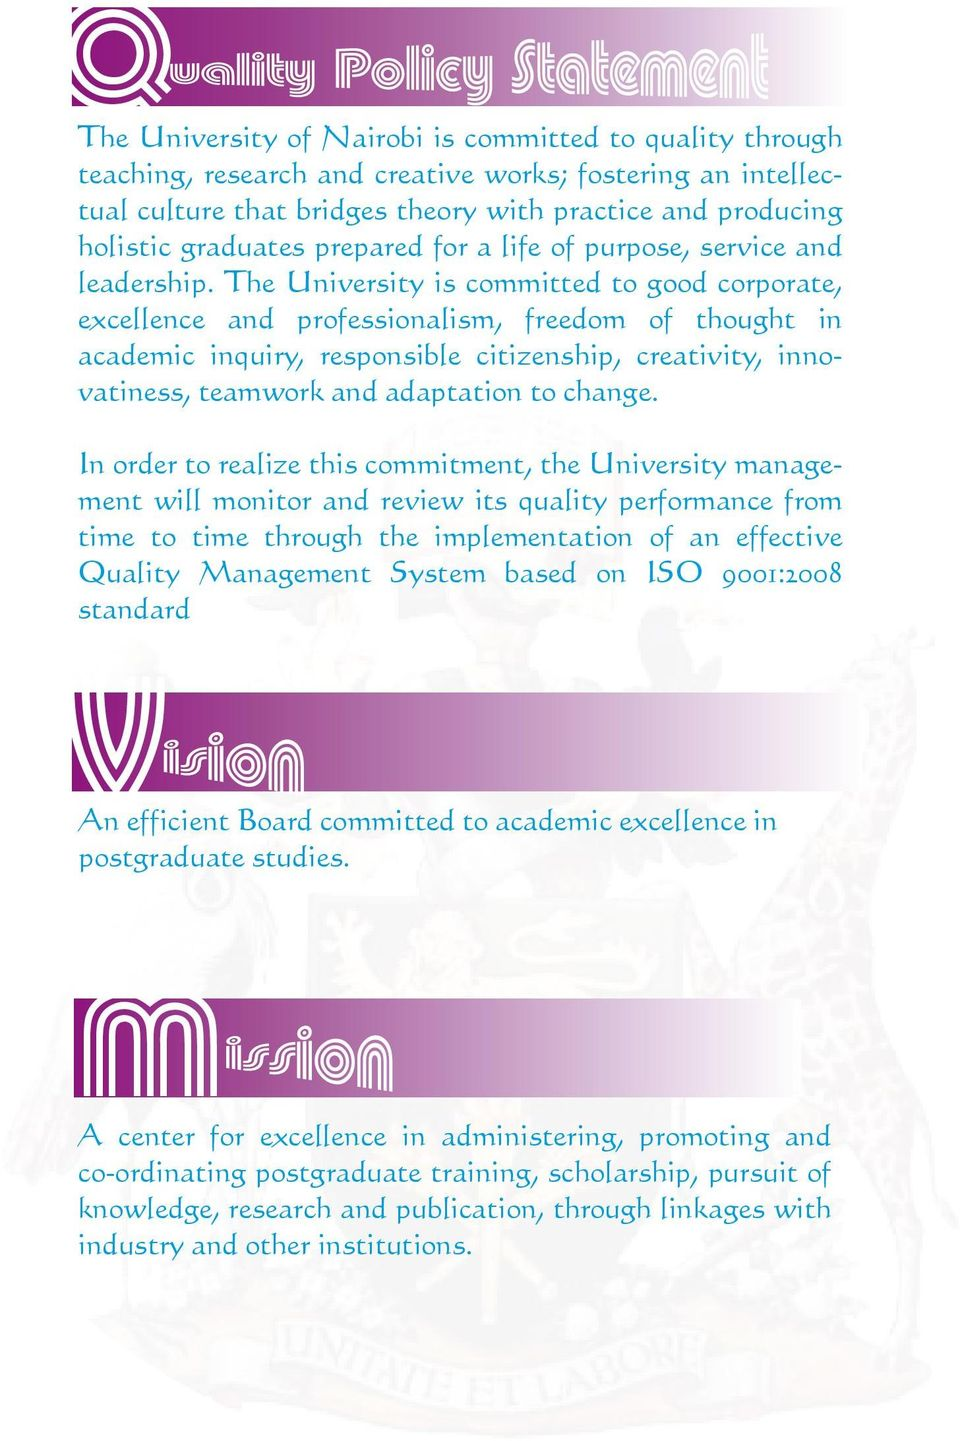 The University is committed to good corporate, excellence and professionalism, freedom of thought in academic inquiry, responsible citizenship, creativity, innovatiness, teamwork and adaptation to